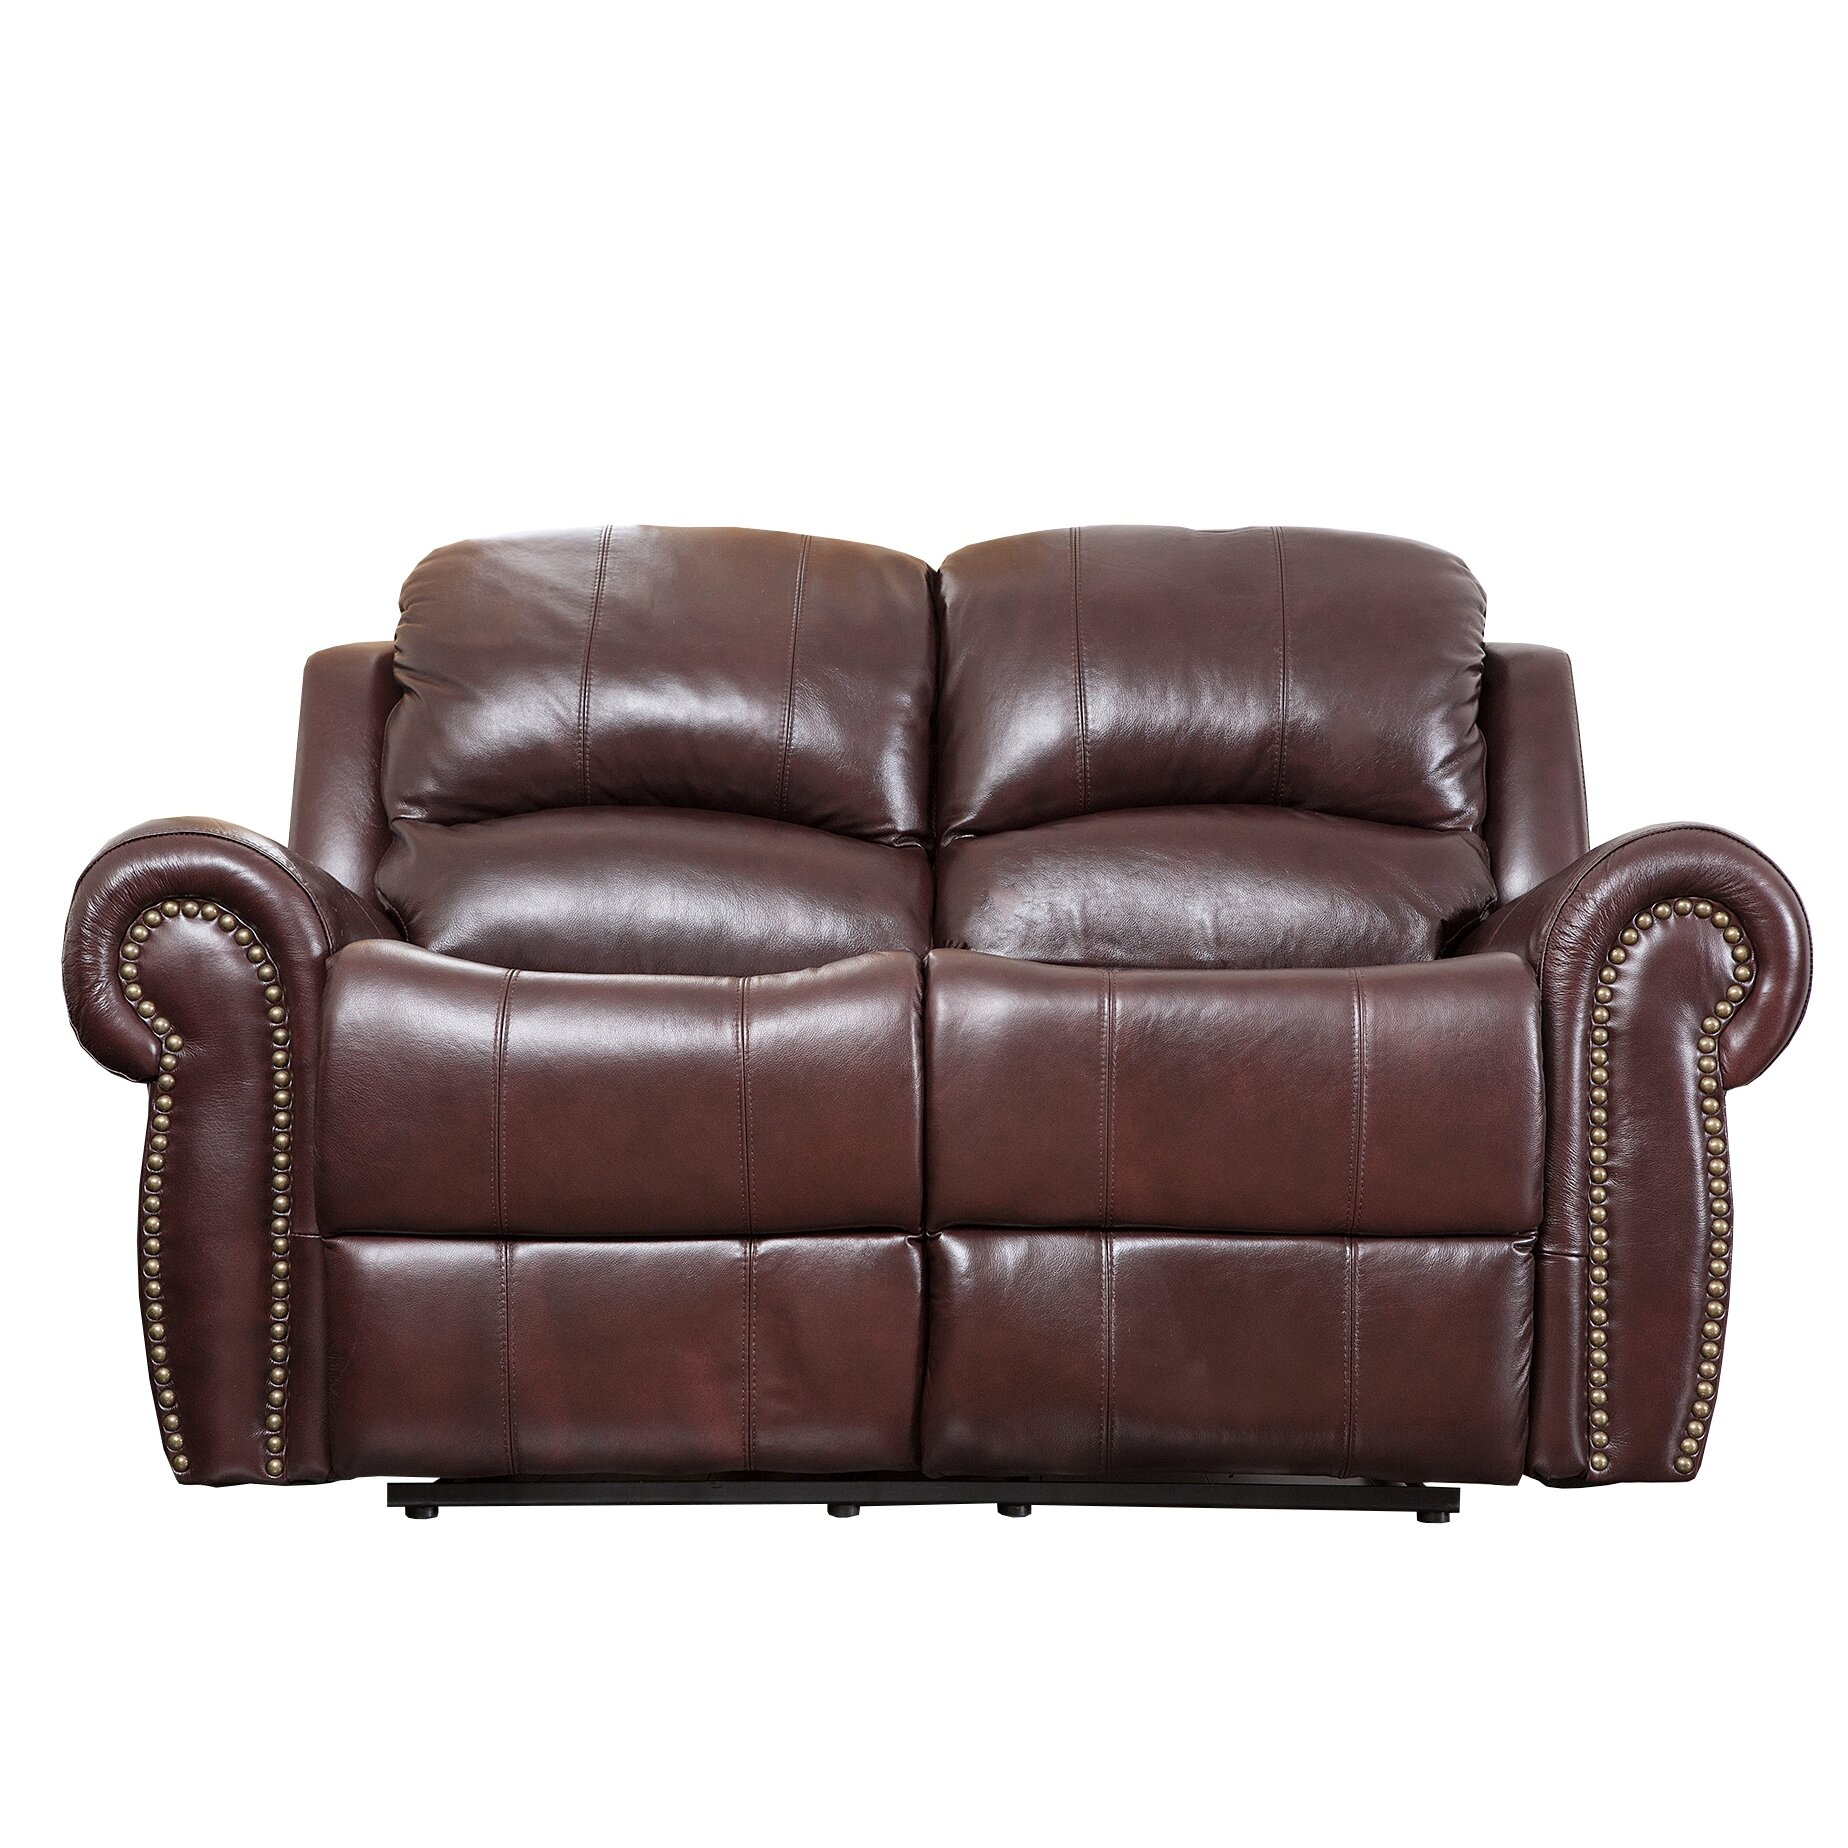 Abbyson living sedona leather reclining loveseat reviews wayfair Leather loveseat recliners